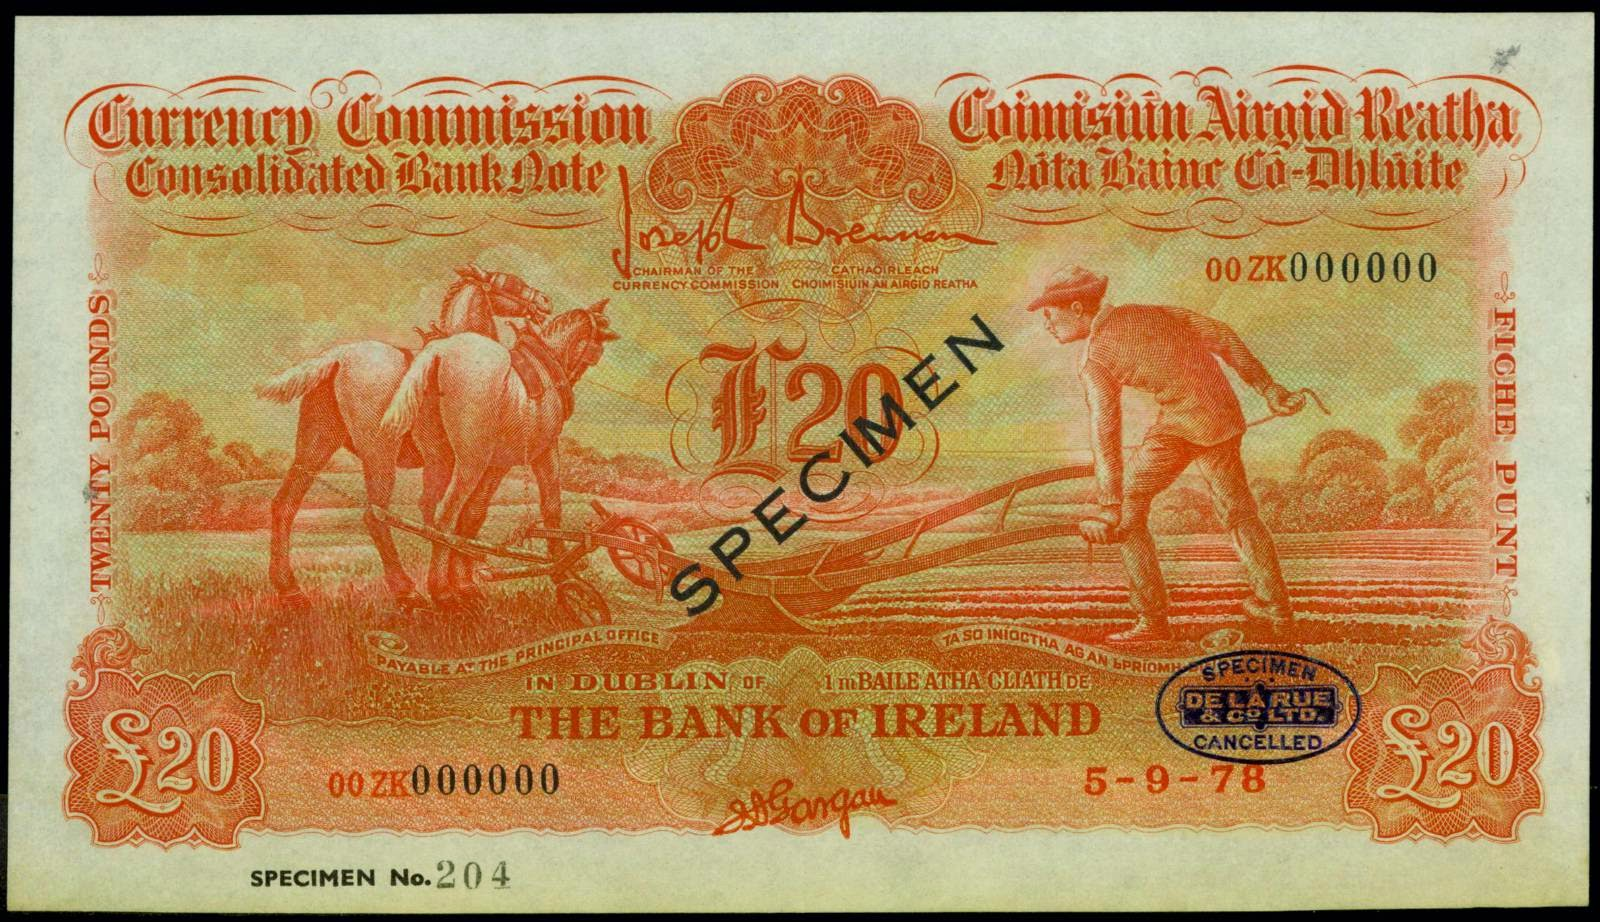 Ireland Currency Consolidated banknotes 20 Pounds Ploughman Note